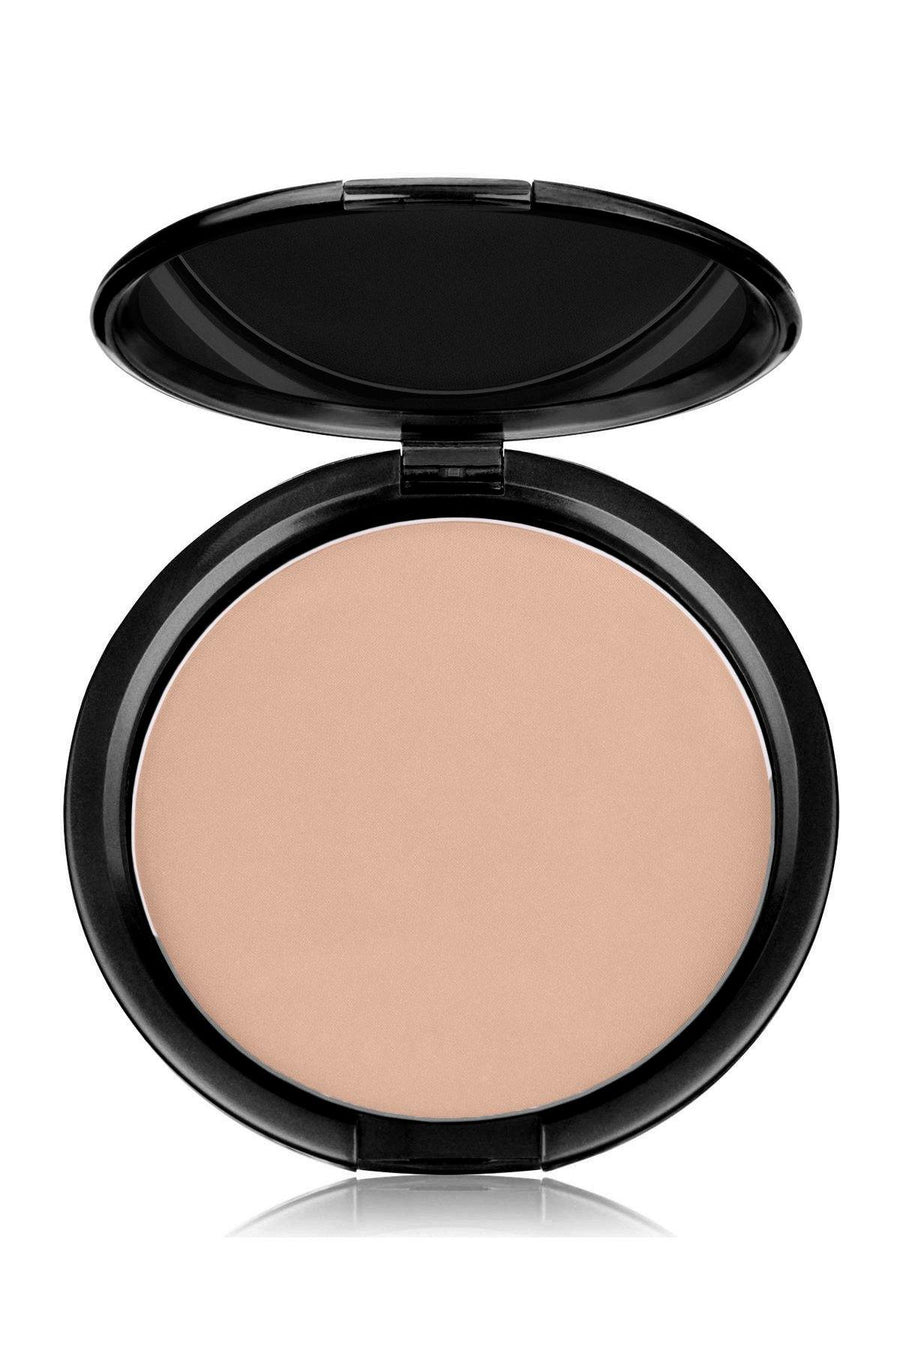 Foundation Pink Tone Light Mineral Pressed Powder & Brush - Blend Mineral Cosmetics